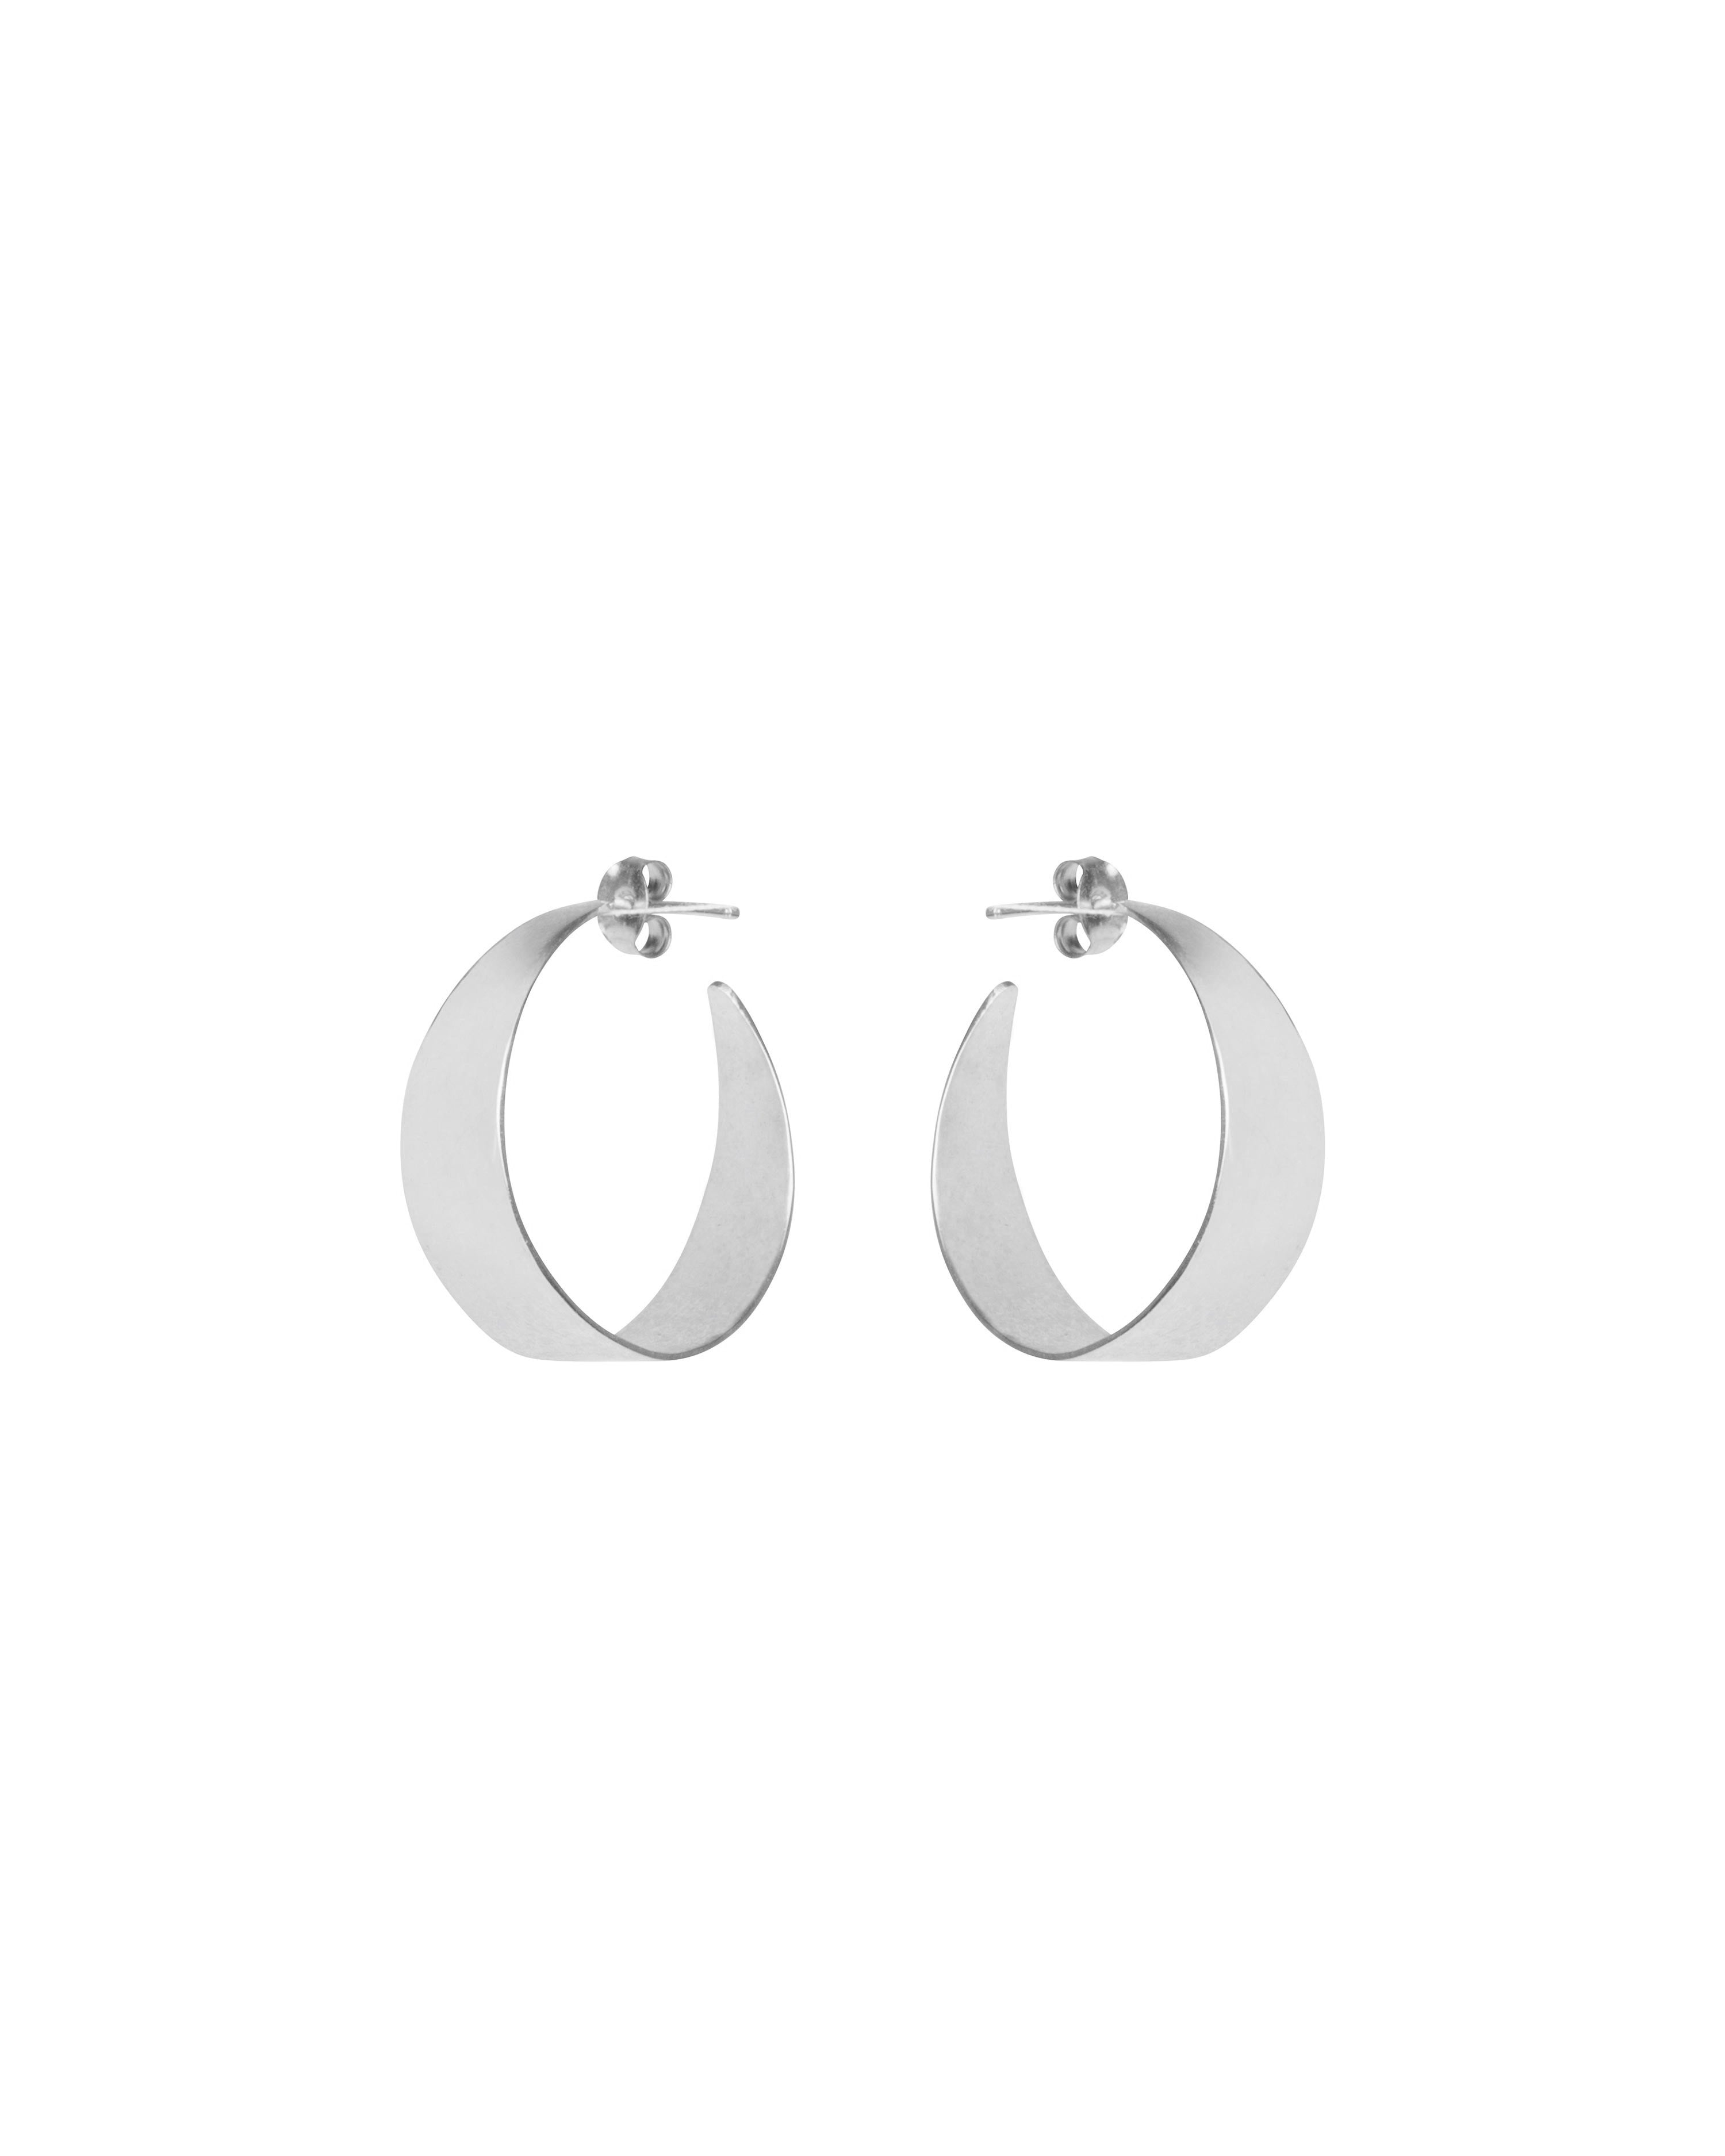 NAKED HOOPS SMALL